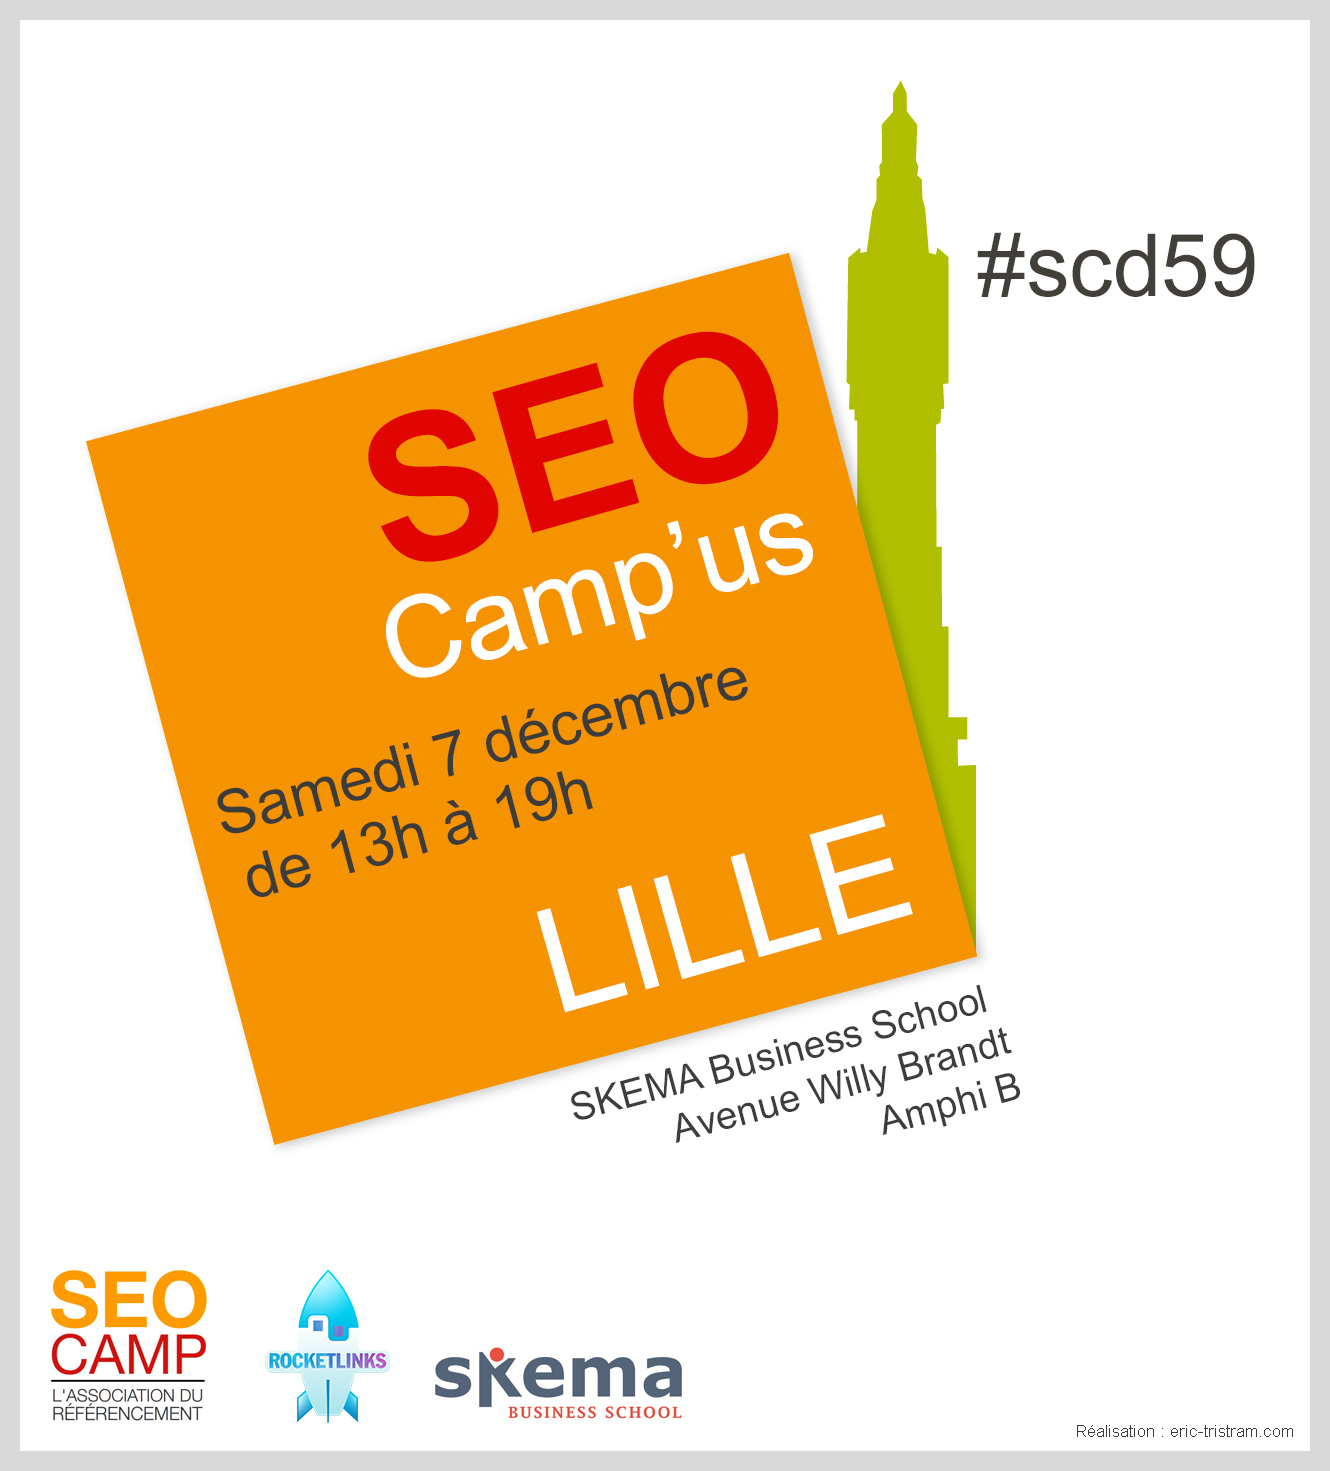 SEO Camp'us Lille 2013